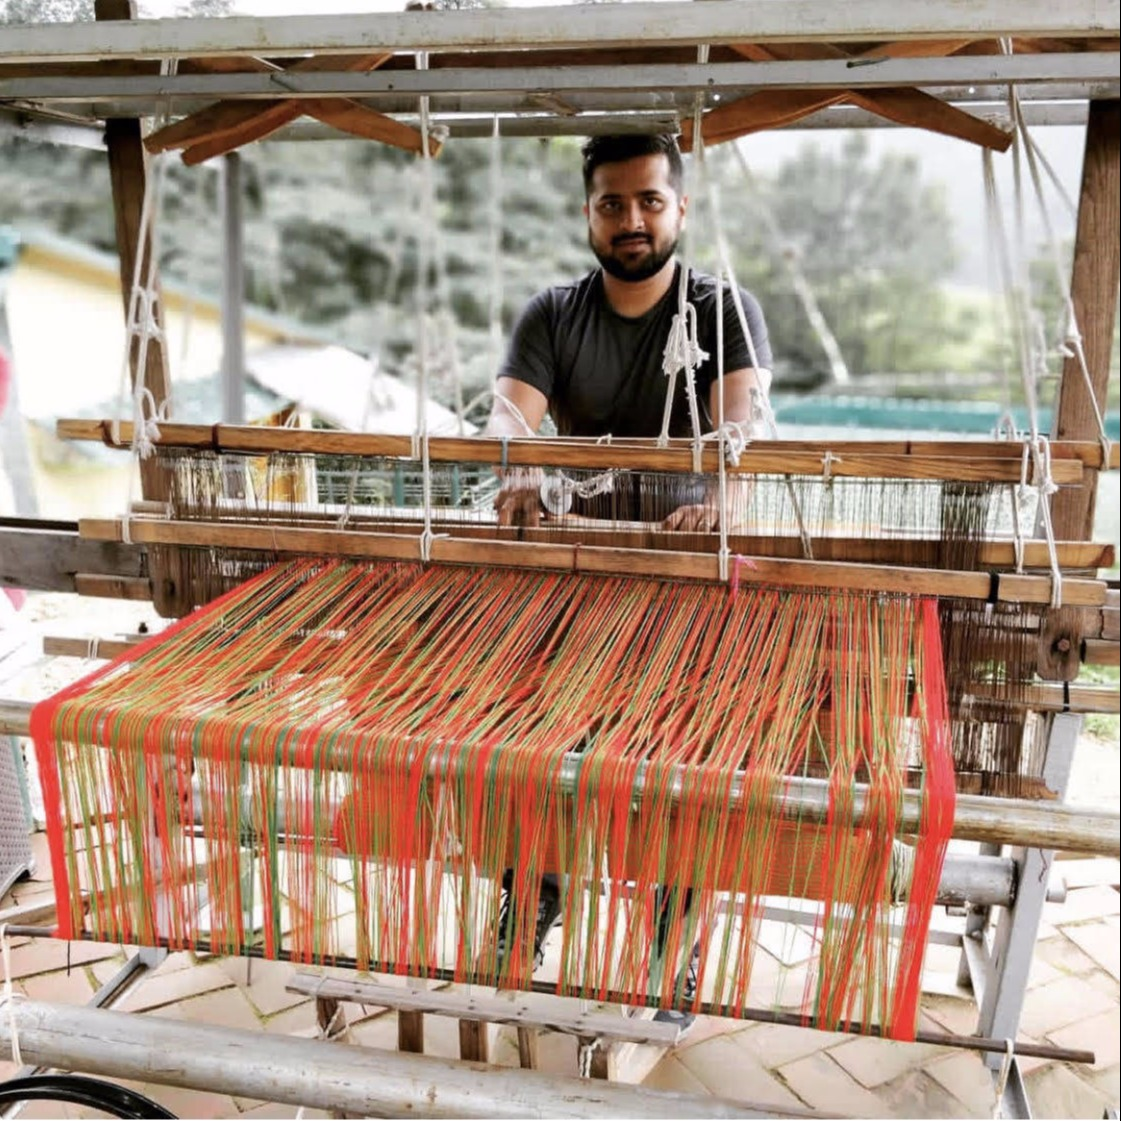 Himachali Shawl Weaving at Rakkh Resort Palampur